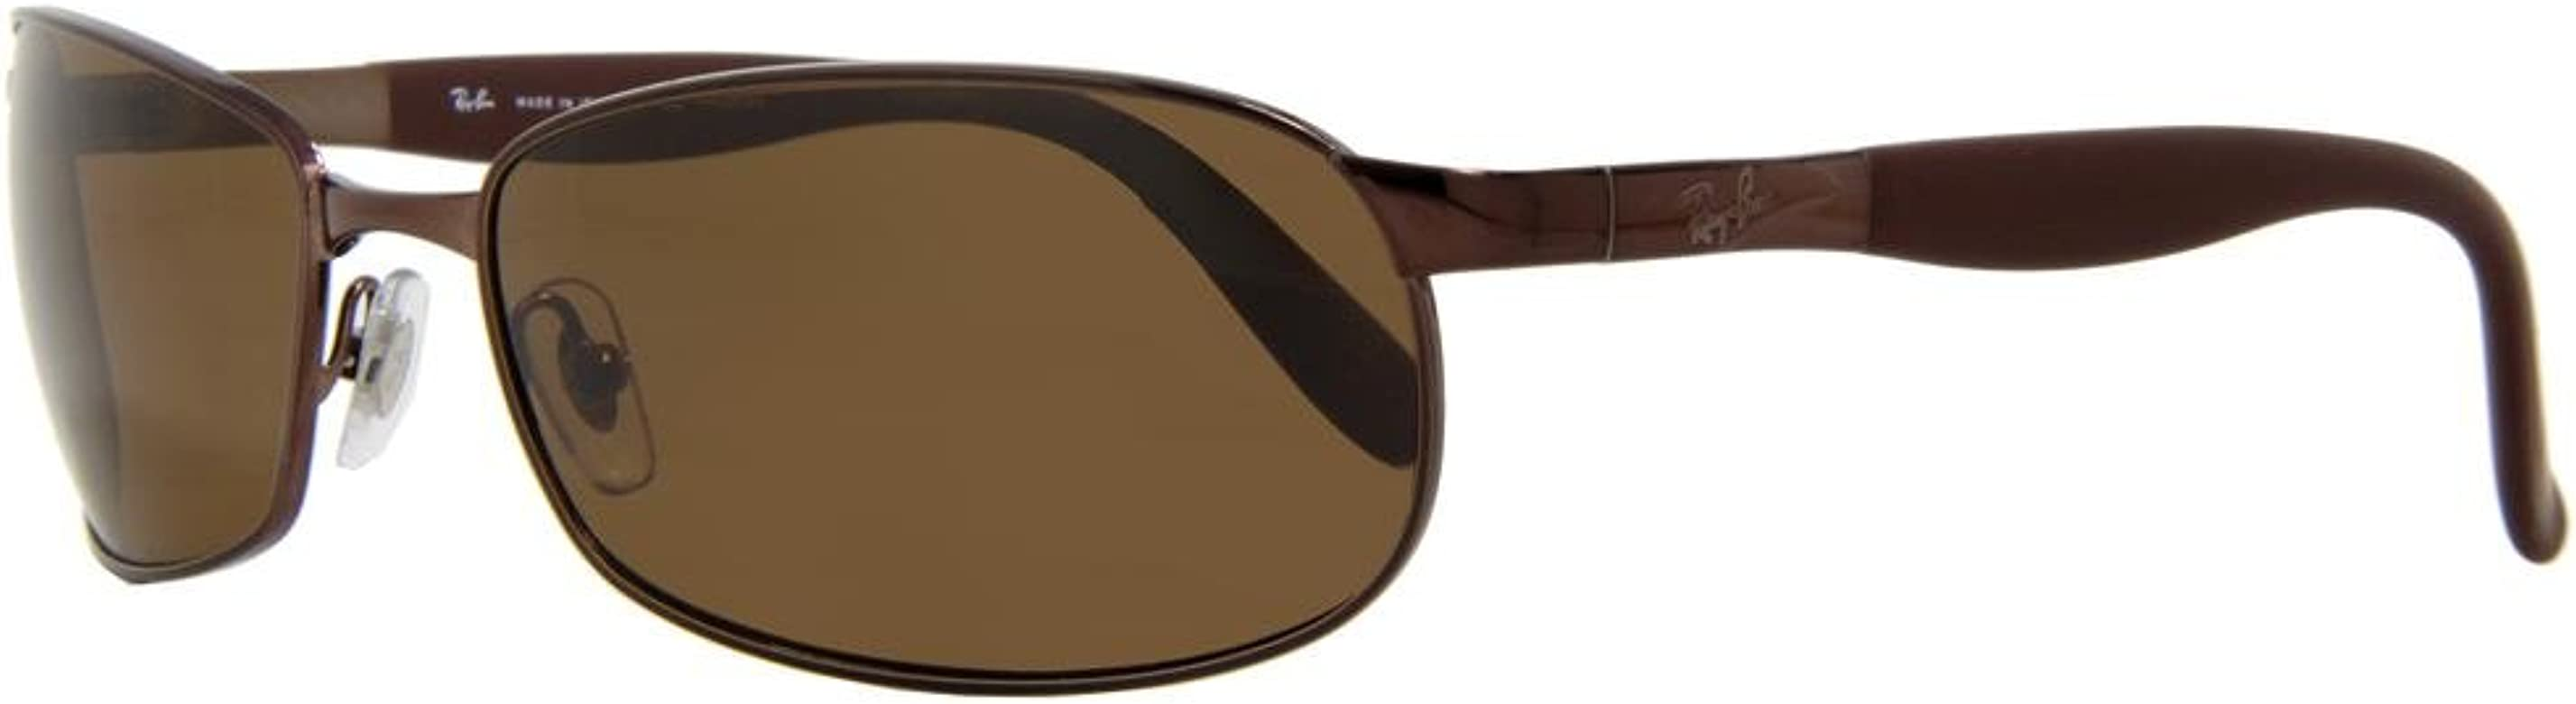 Amazon.com: Ray Ban anteojos de sol RB 3245 polarizadas: Shoes